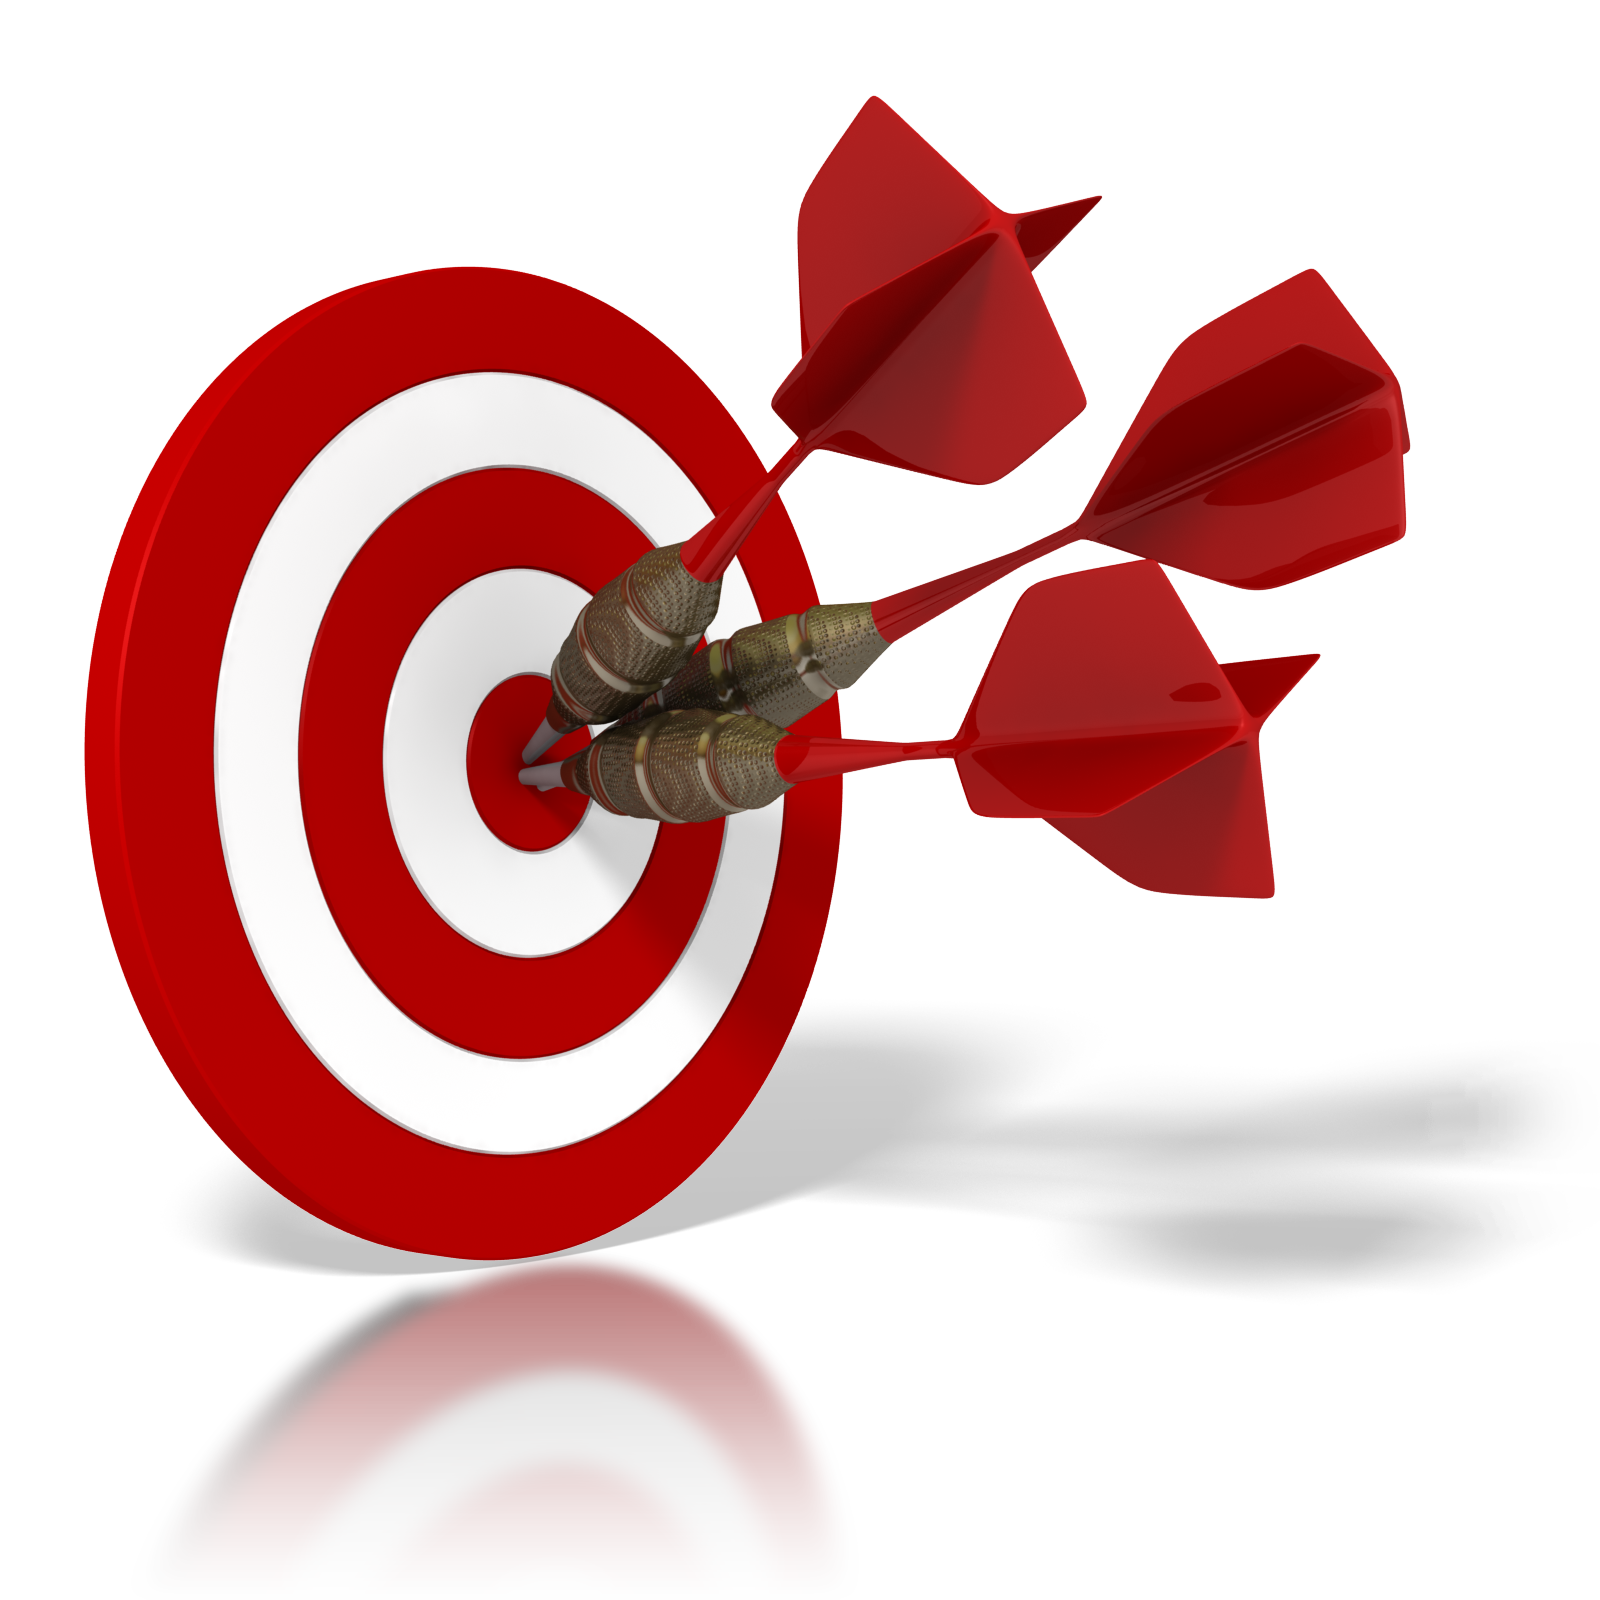 Target clipart learning #14